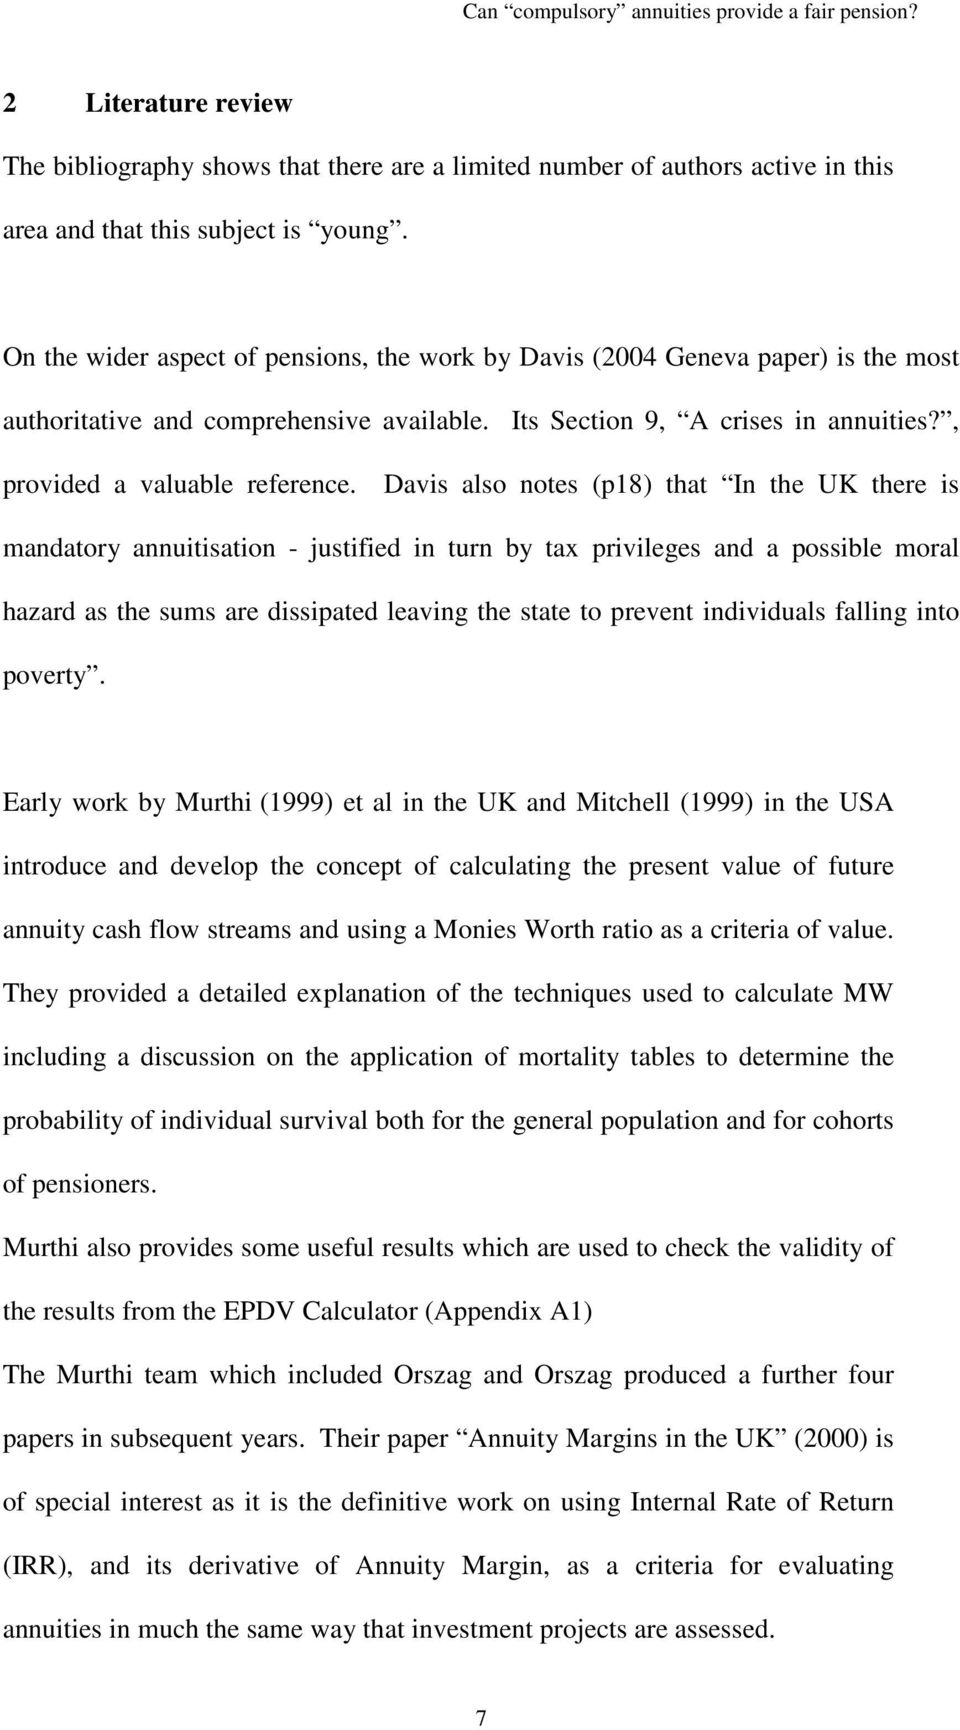 Davis also notes (p18) that In the UK there is mandatory annuitisation - justified in turn by tax privileges and a possible moral hazard as the sums are dissipated leaving the state to prevent